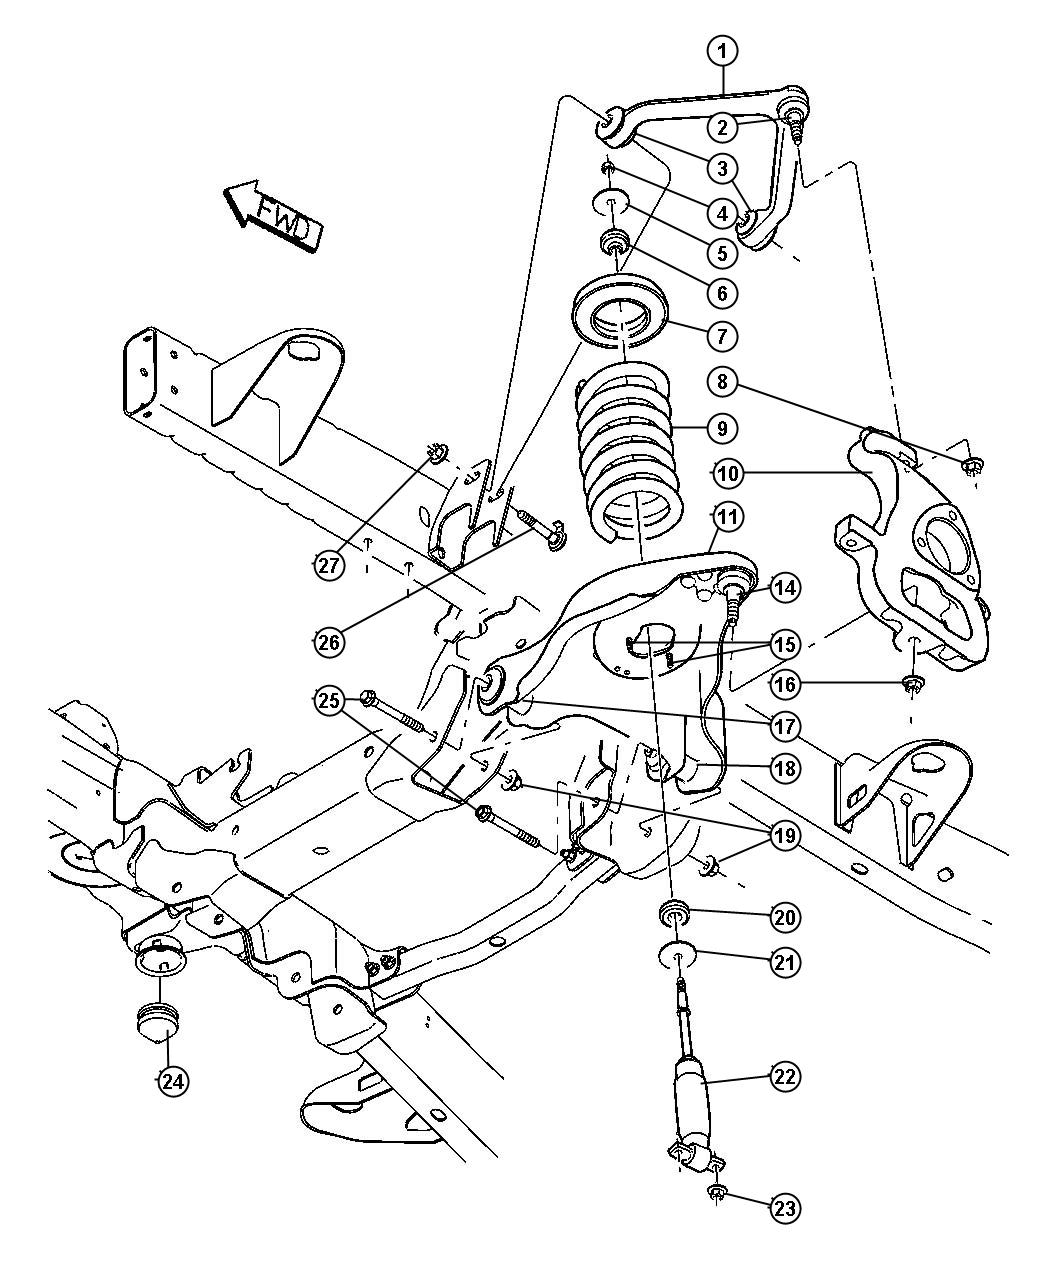 2000 f250 super duty 4x4 wiring diagram 2000 discover your 05 f350 front suspension diagram 2000 f250 super duty alternator wiring